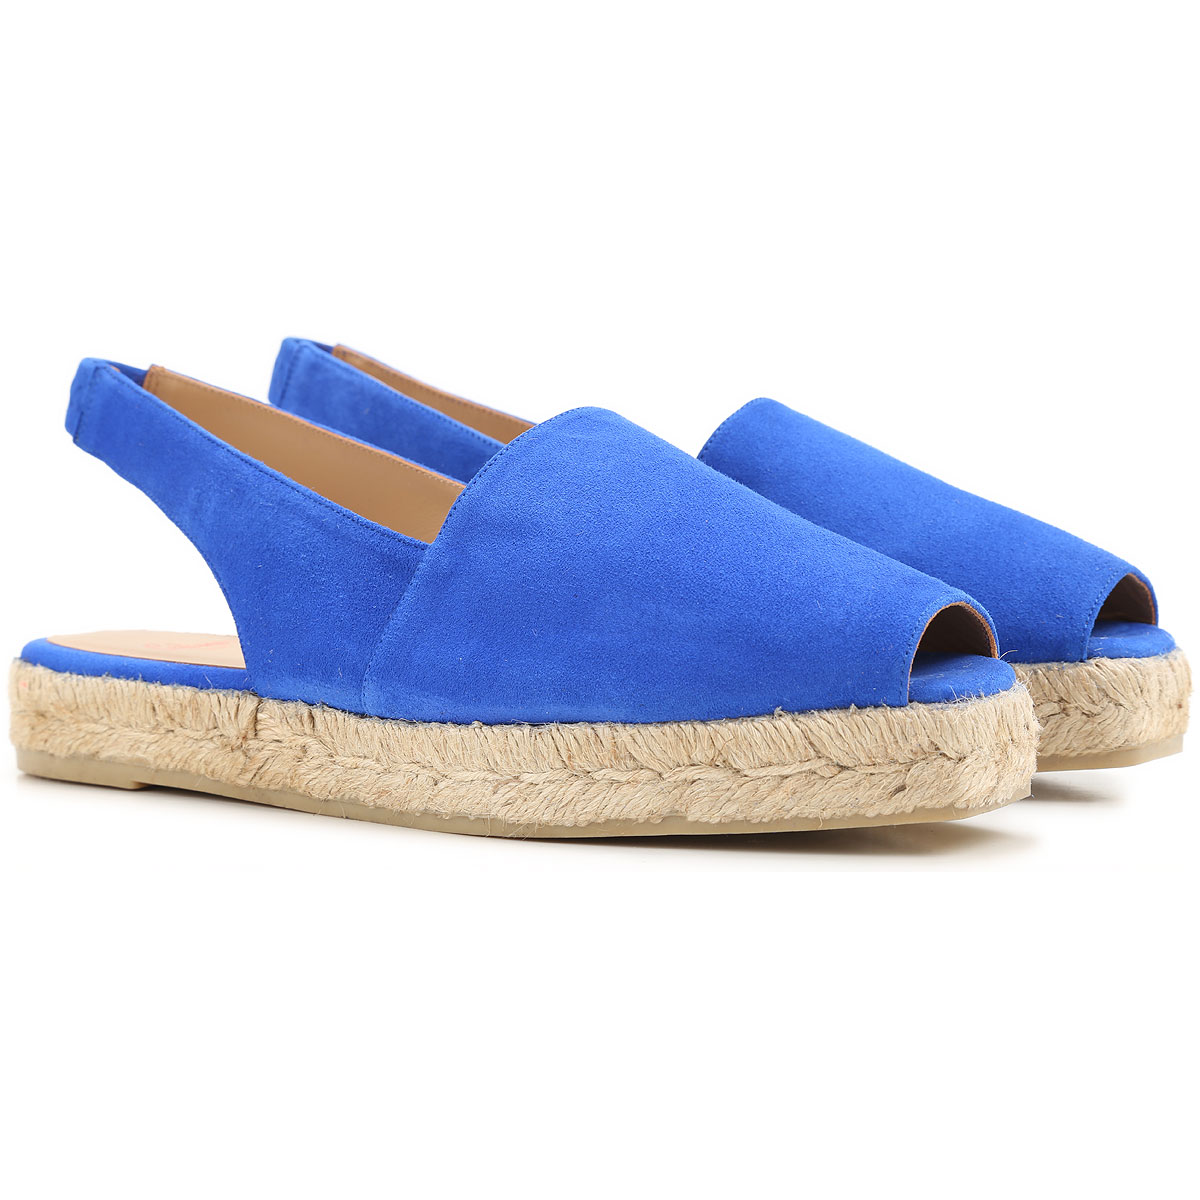 Castaner Sandals for Women On Sale in Outlet, Electric Blue, Suede leather, 2019, 5 6